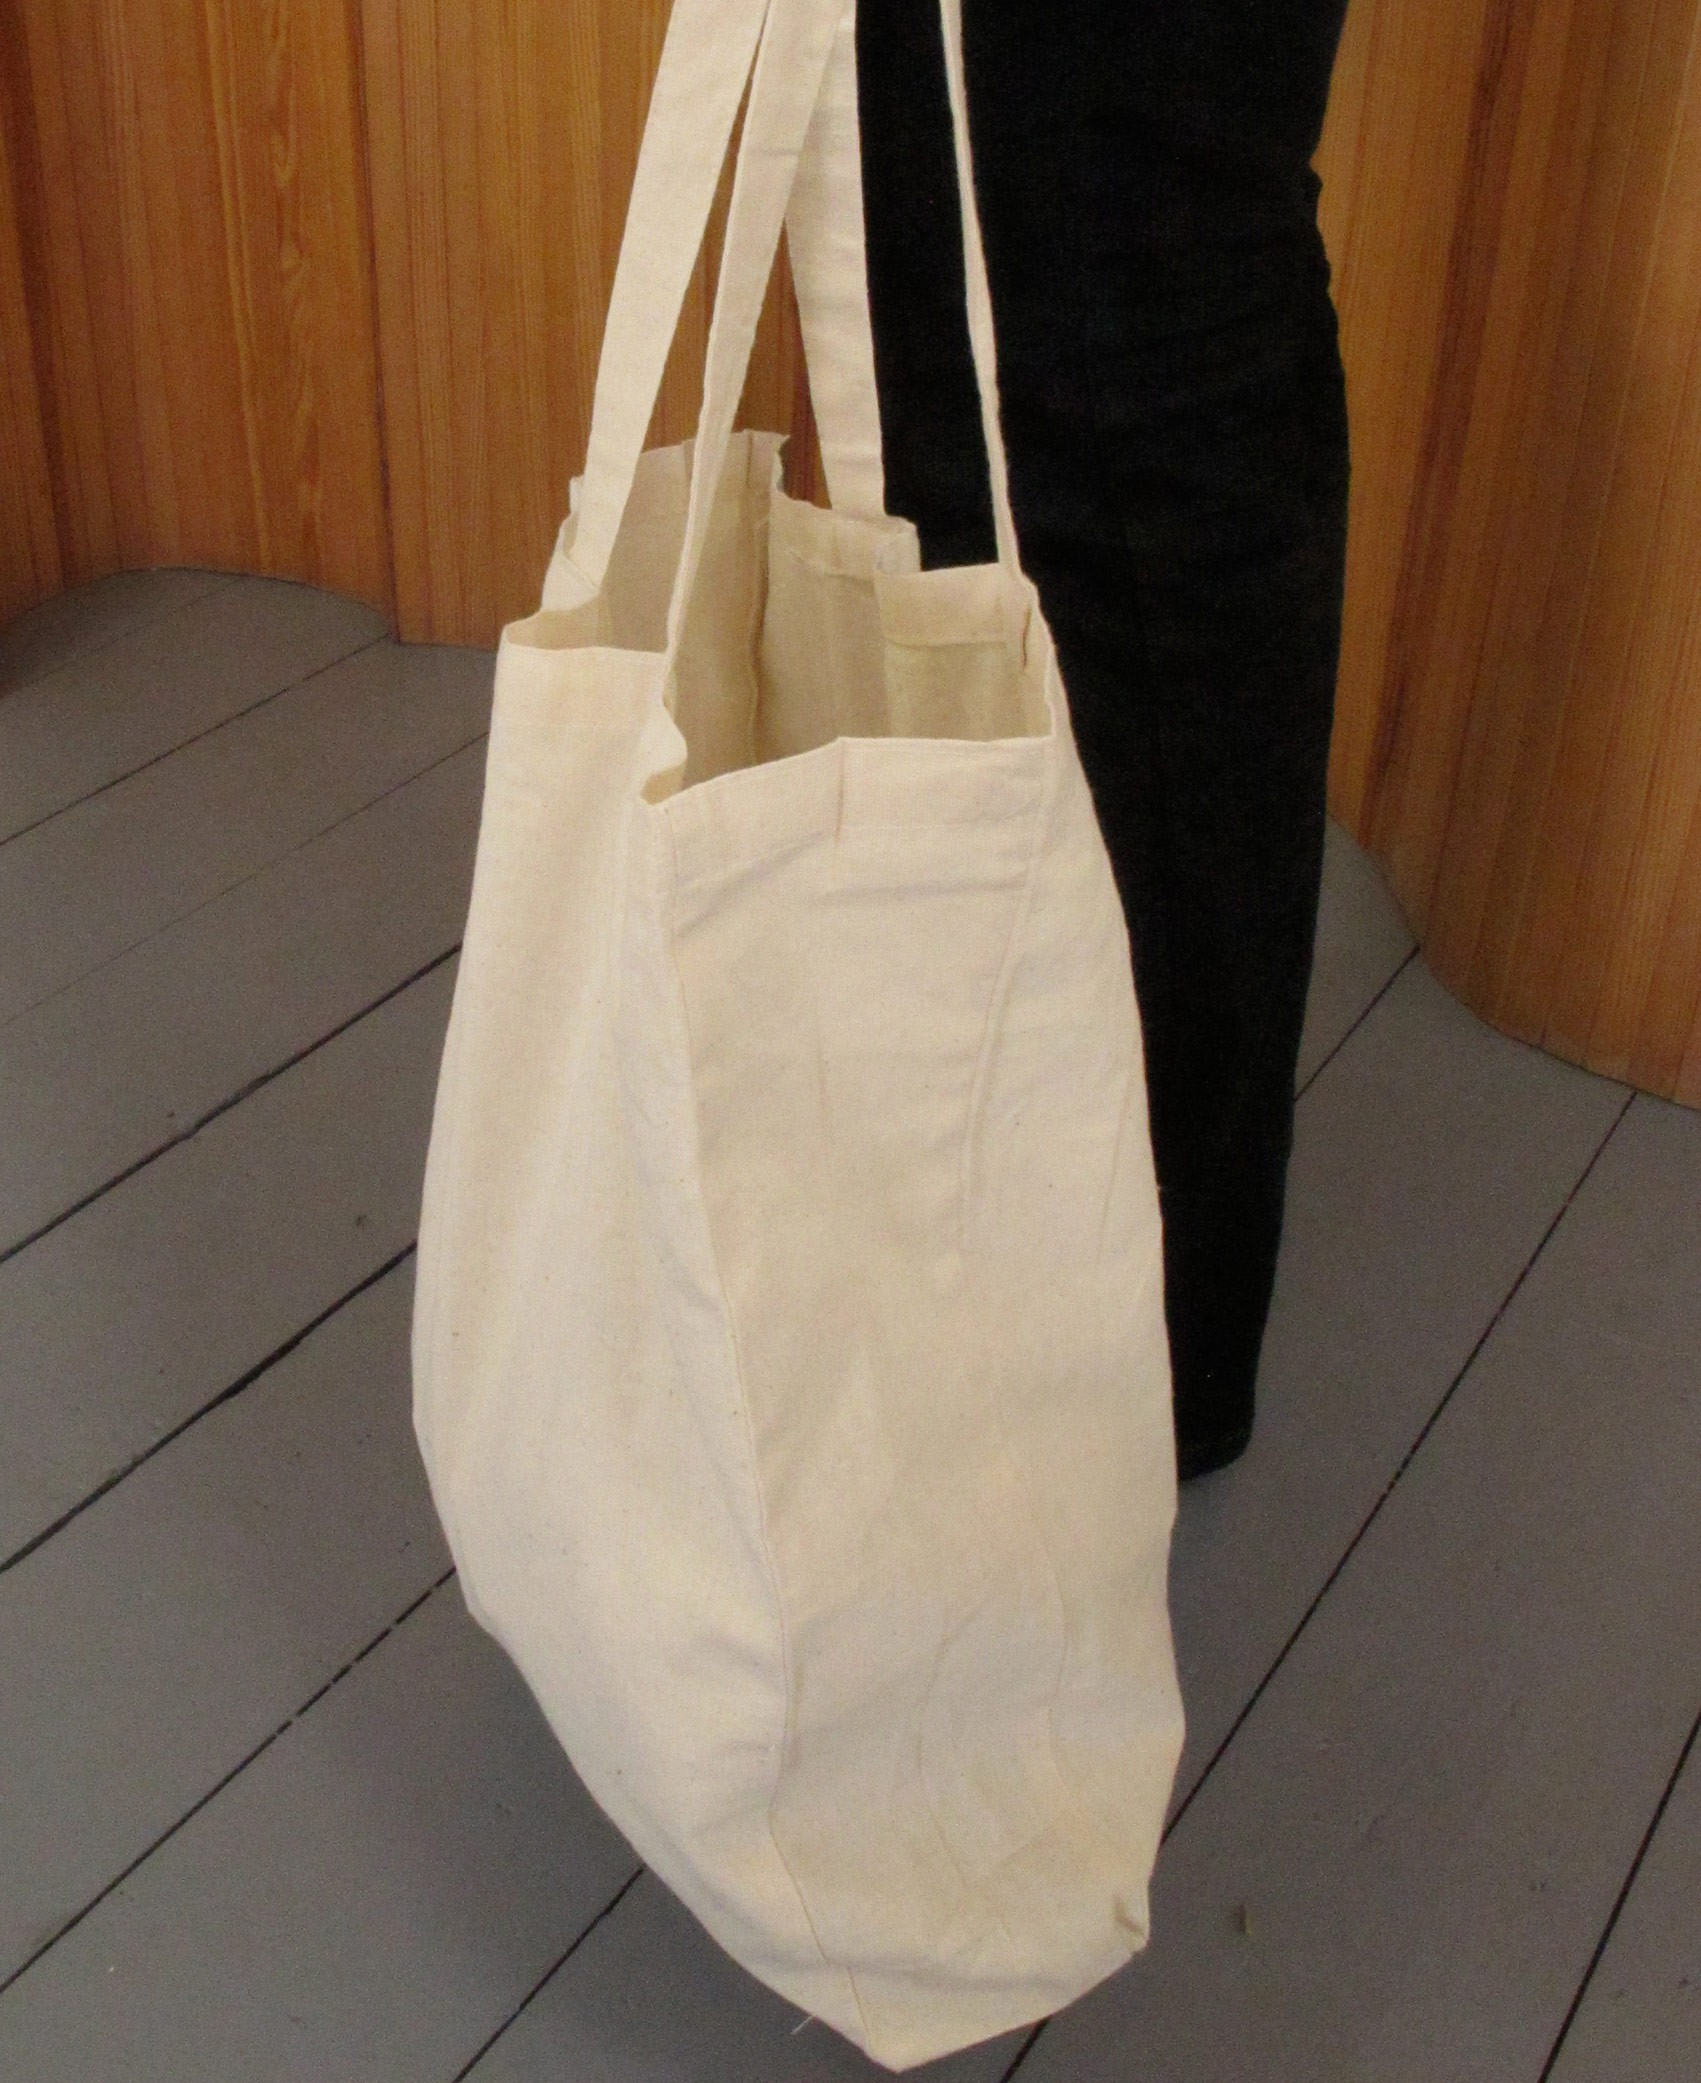 ... large-tote-bags-cotton-customer-photos d90df46b3f8b